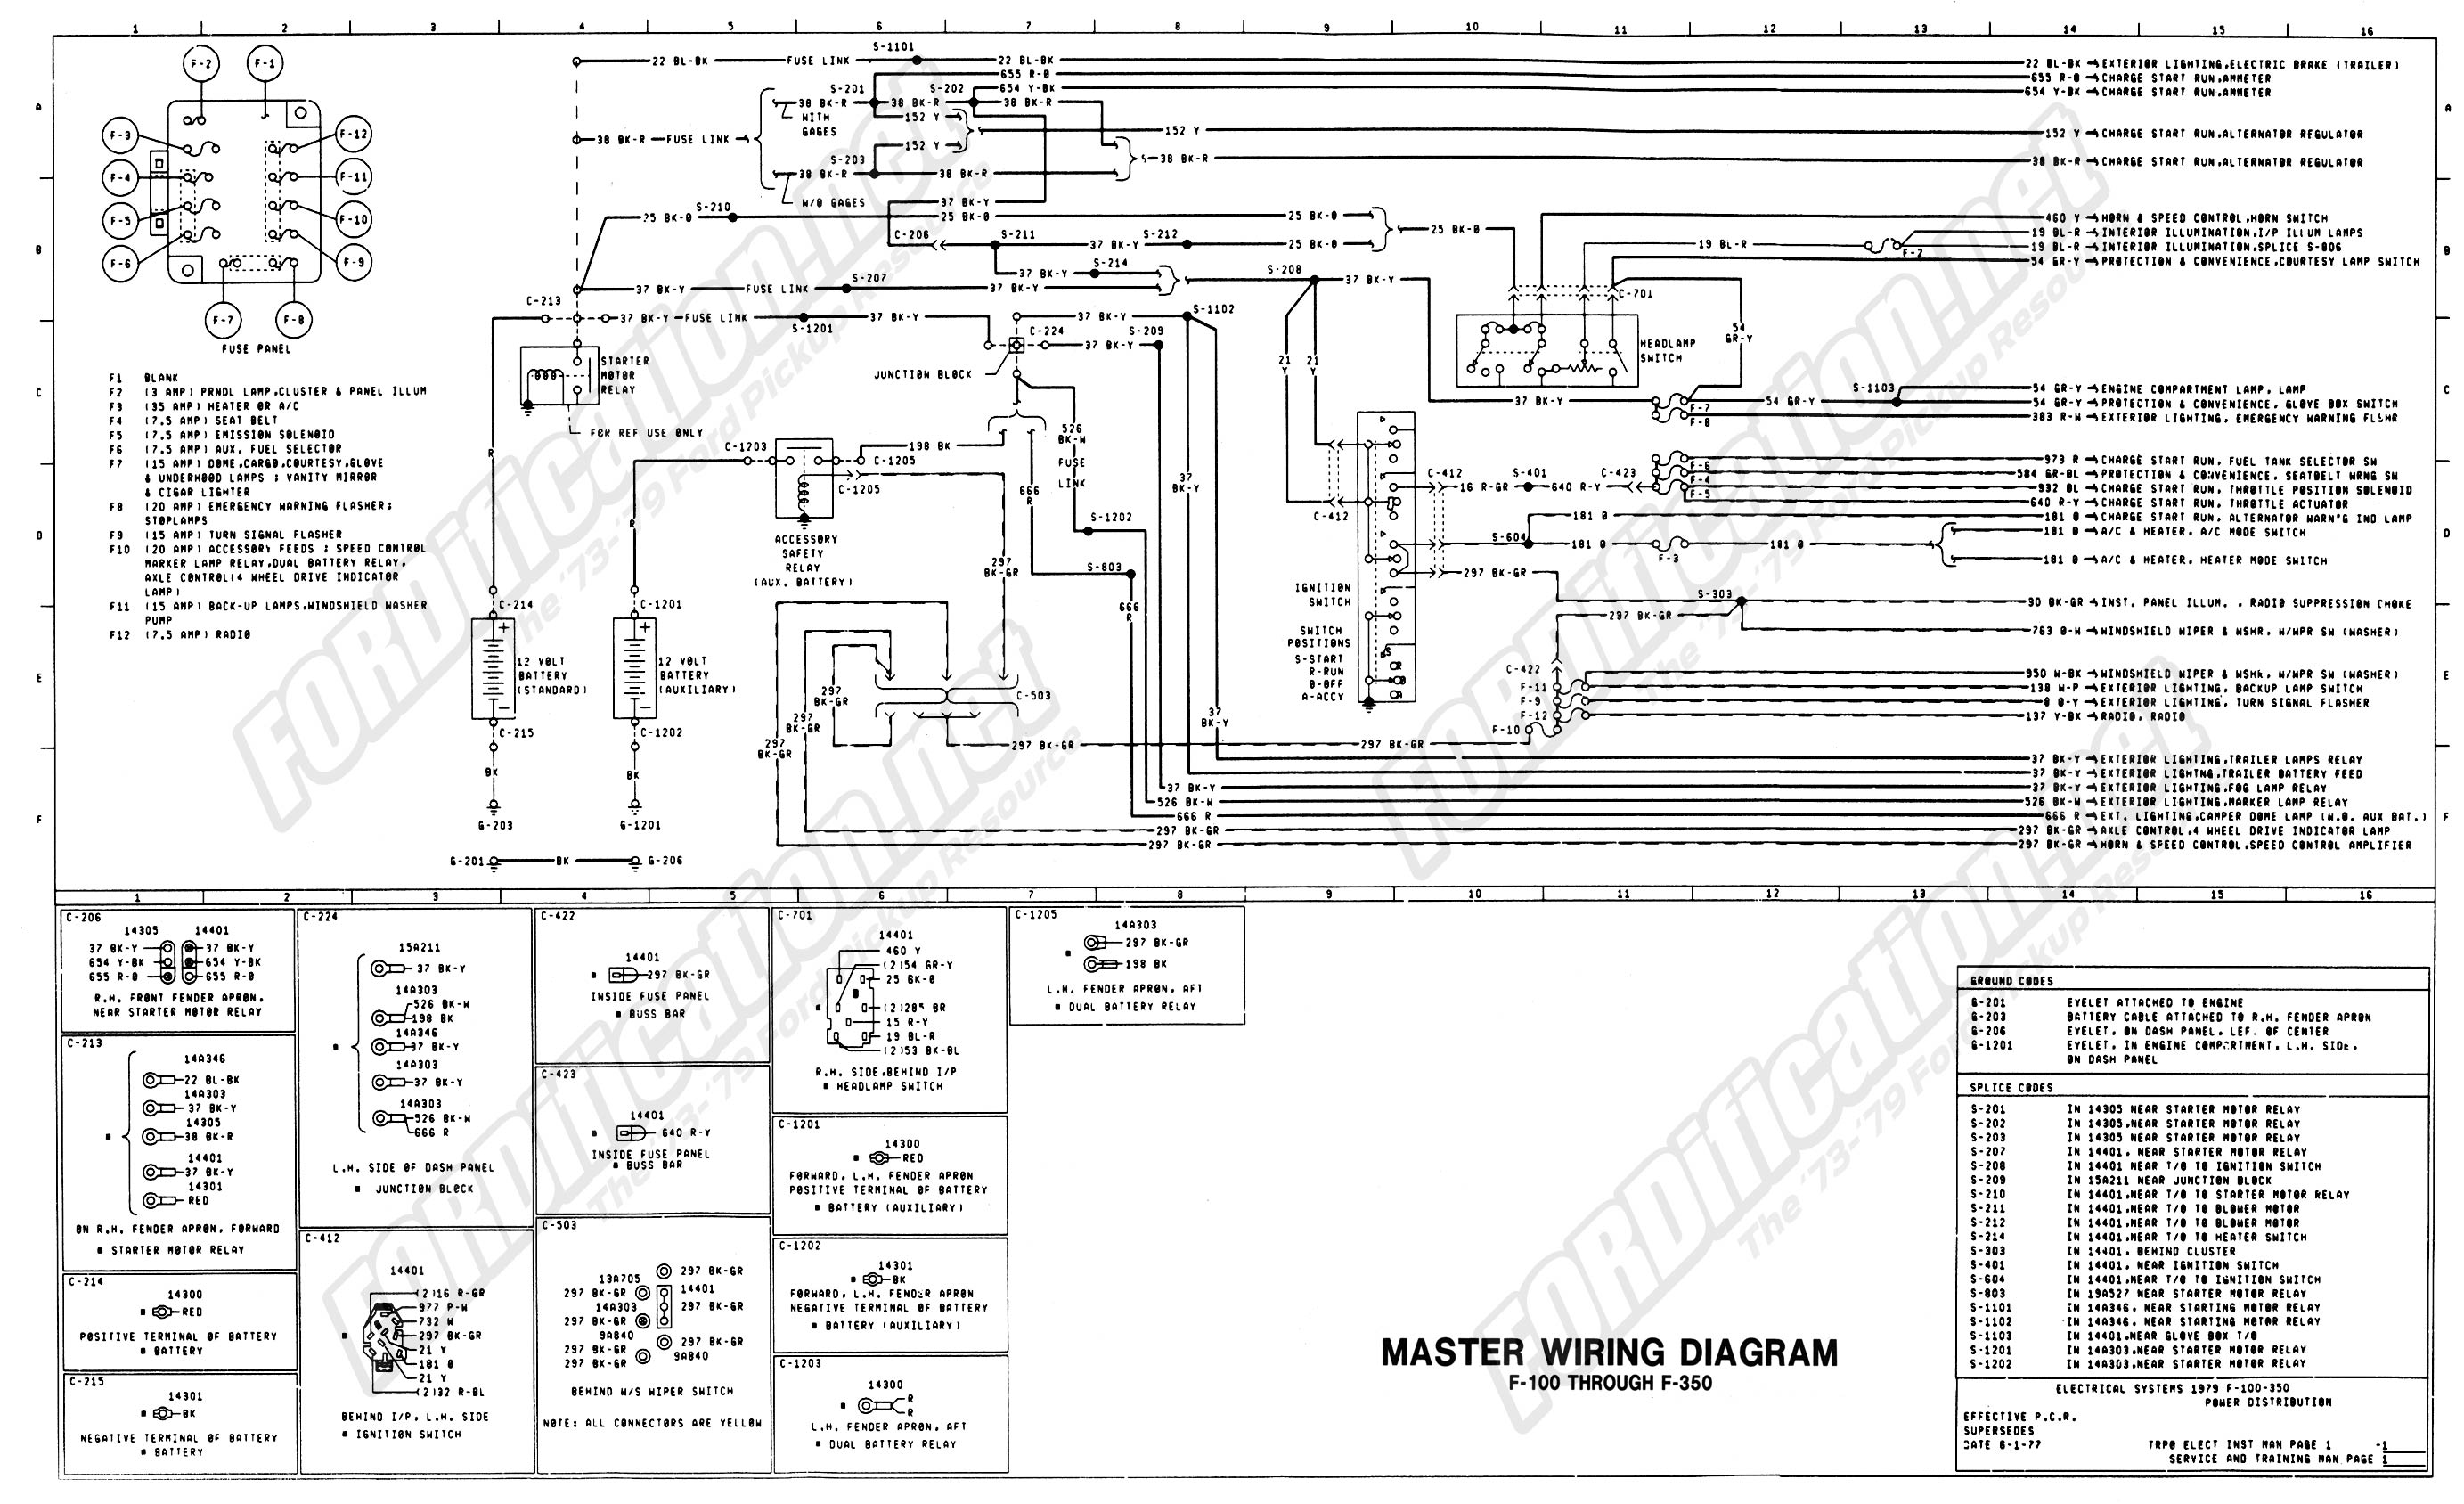 wiring_79master_1of9 1973 1979 ford truck wiring diagrams & schematics fordification net 1979 ford bronco fuse box diagram at nearapp.co